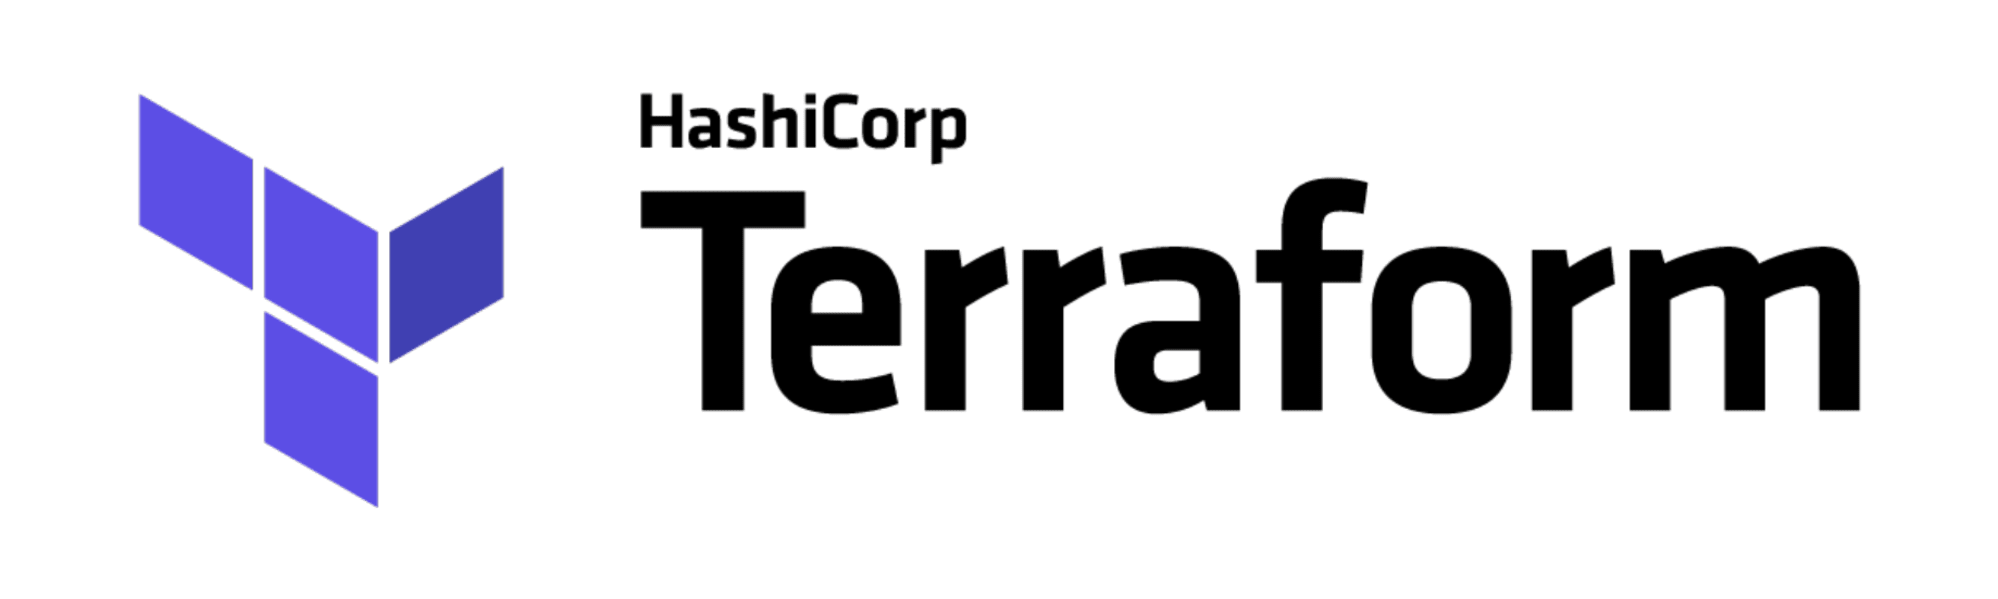 Getting Started with Terraform on Windows: Install, Setup and Demo